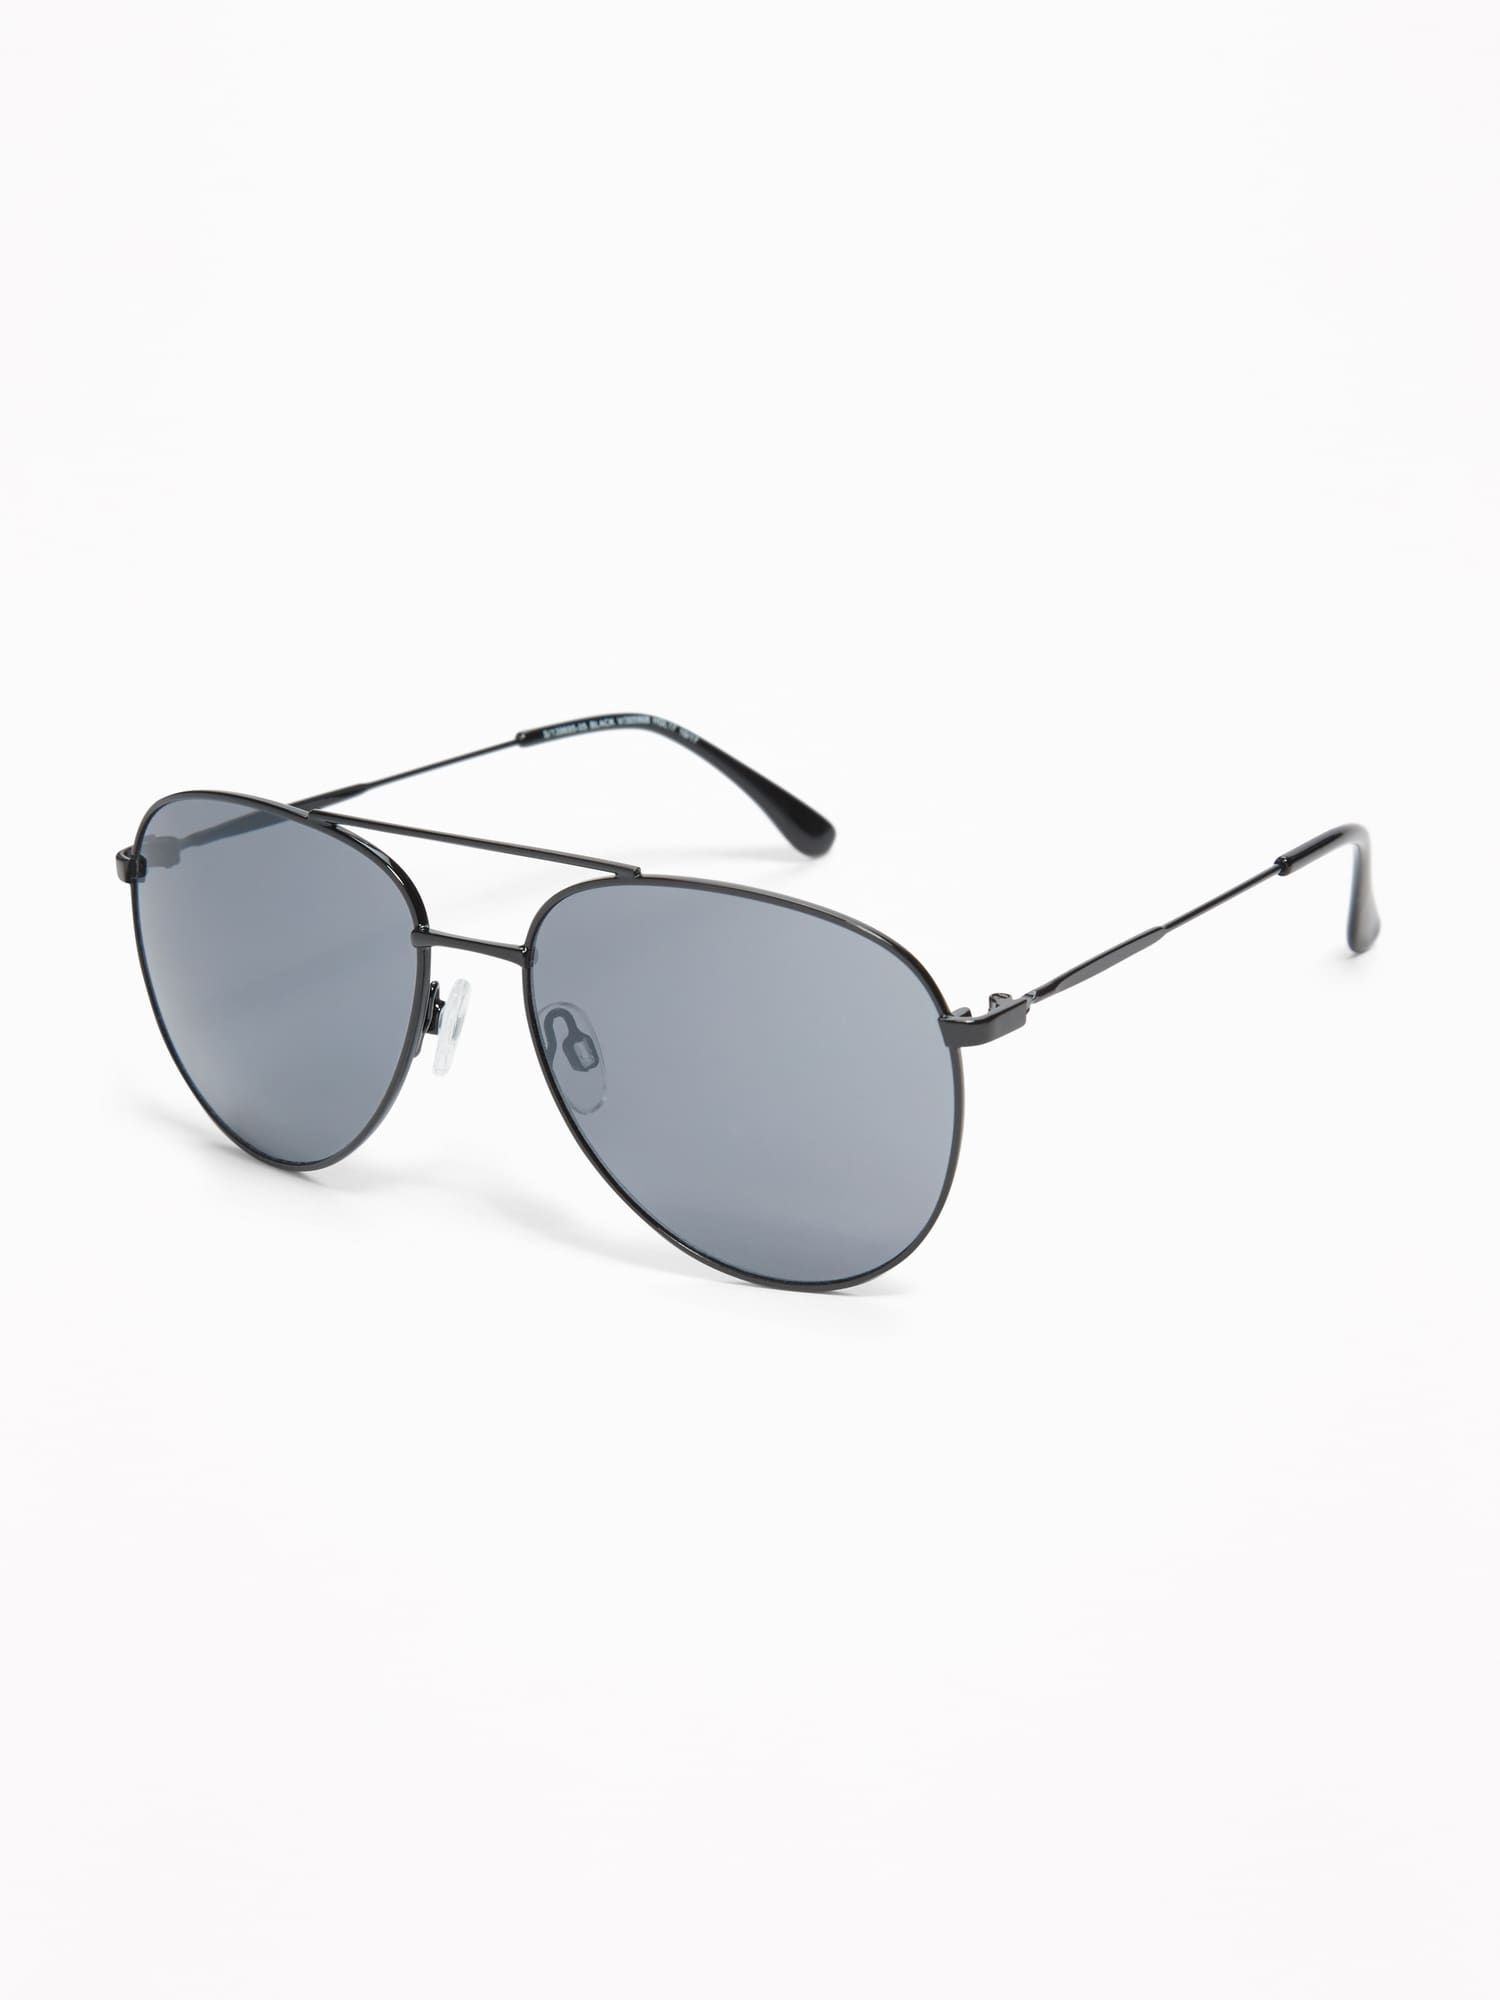 72ffa7ac80 Buy Old Navy Classic Aviator Sunglasses For Women in Egypt